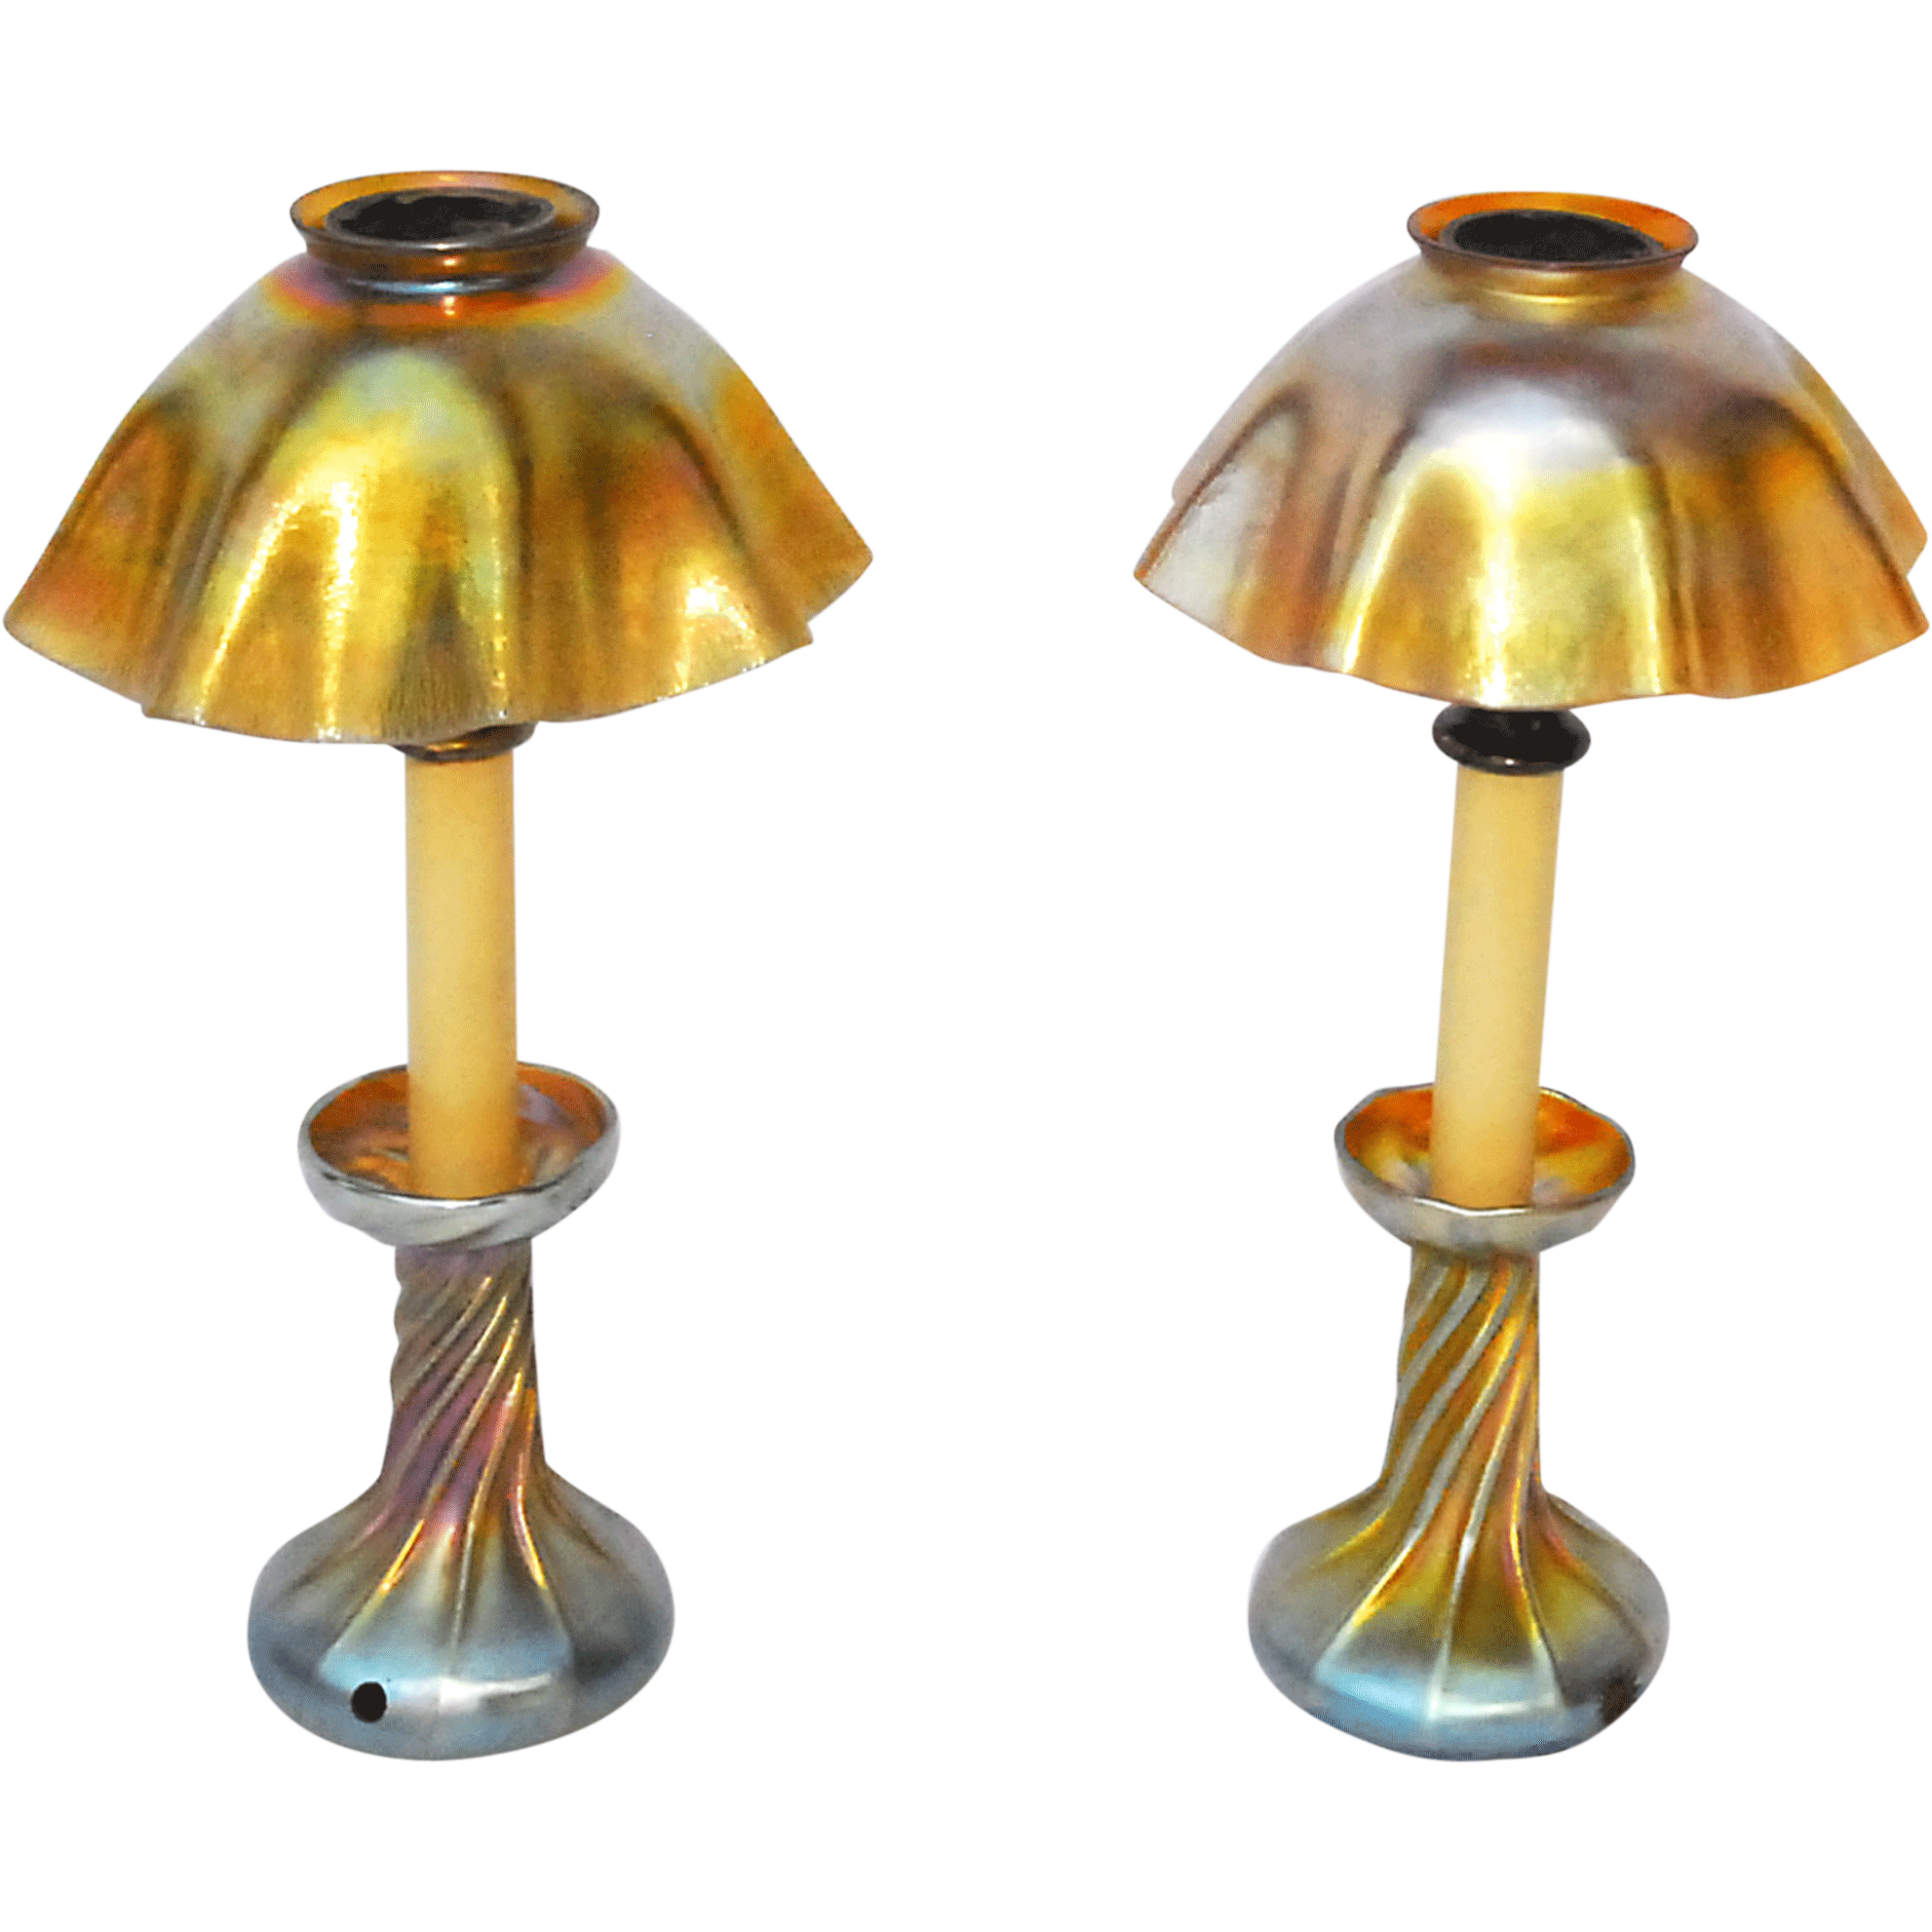 Pair of Art Glass Candlestick Lamps Signed LCT, Louis Comfort Tiffany